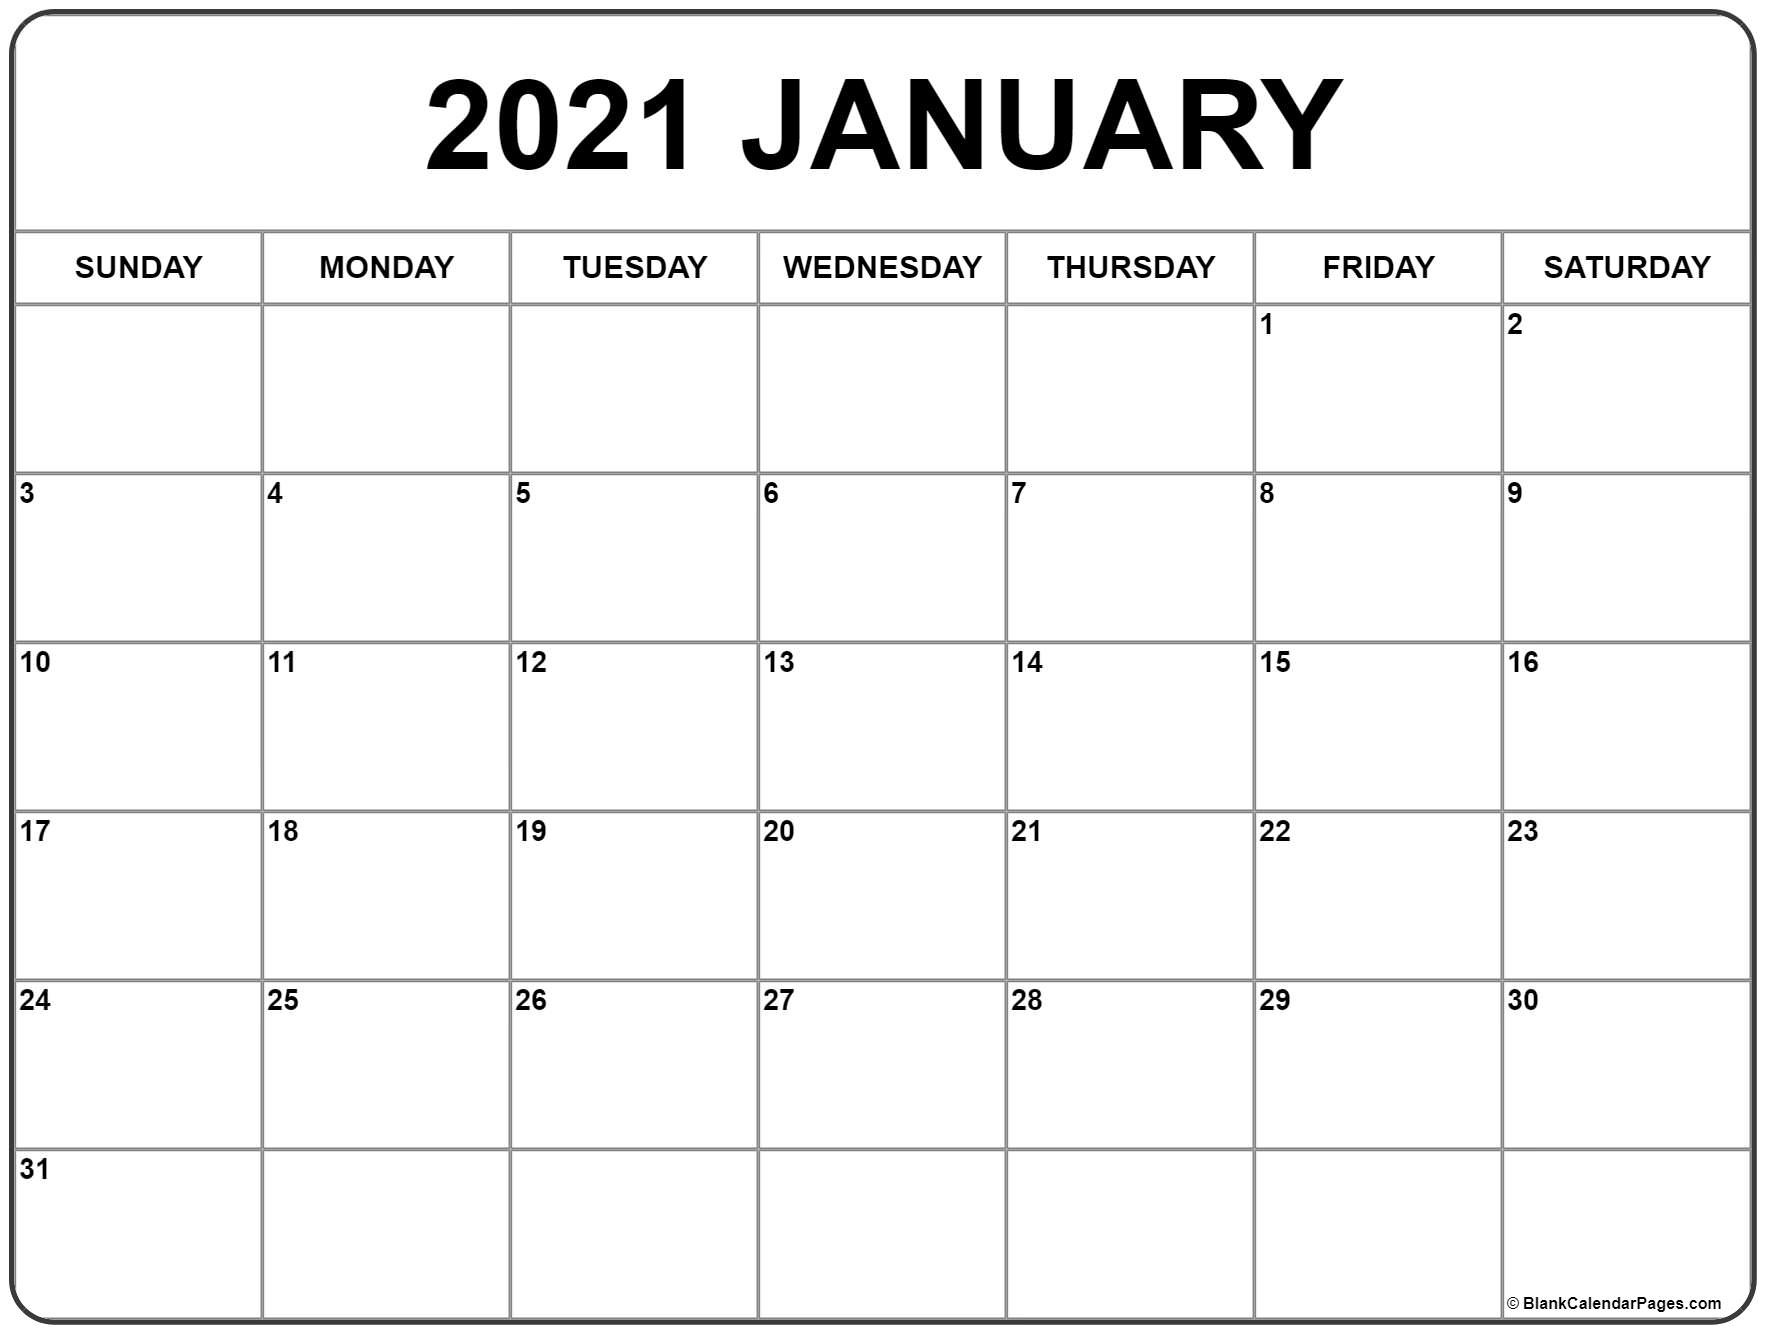 January 2021 Calendar | Free Printable Monthly Calendars-Printable Calendar 2021